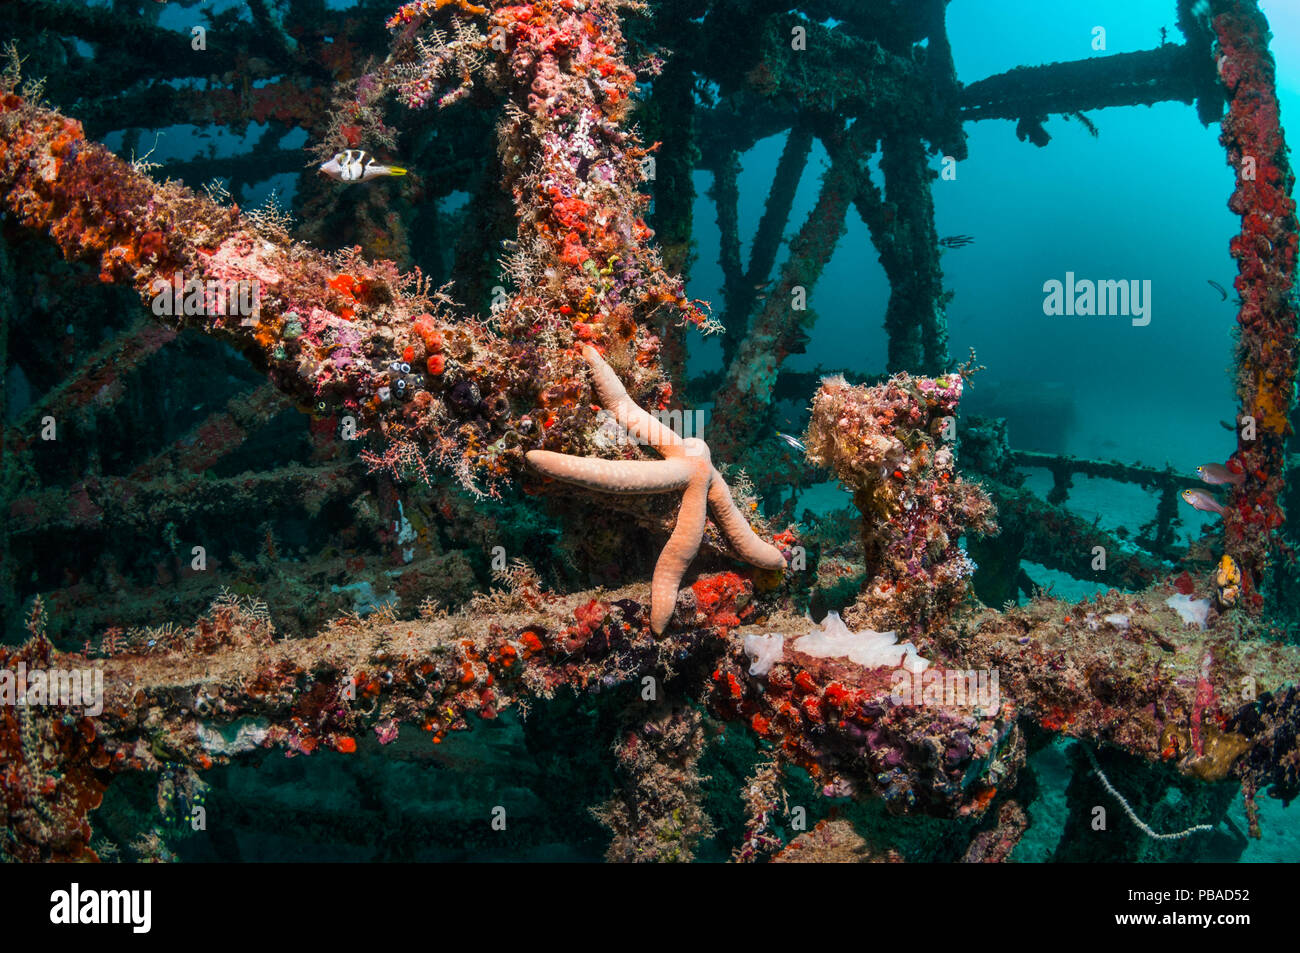 Artificial coral reef site with a Blue starfish (Linckia laevigata) Mabul, Malaysia. - Stock Image